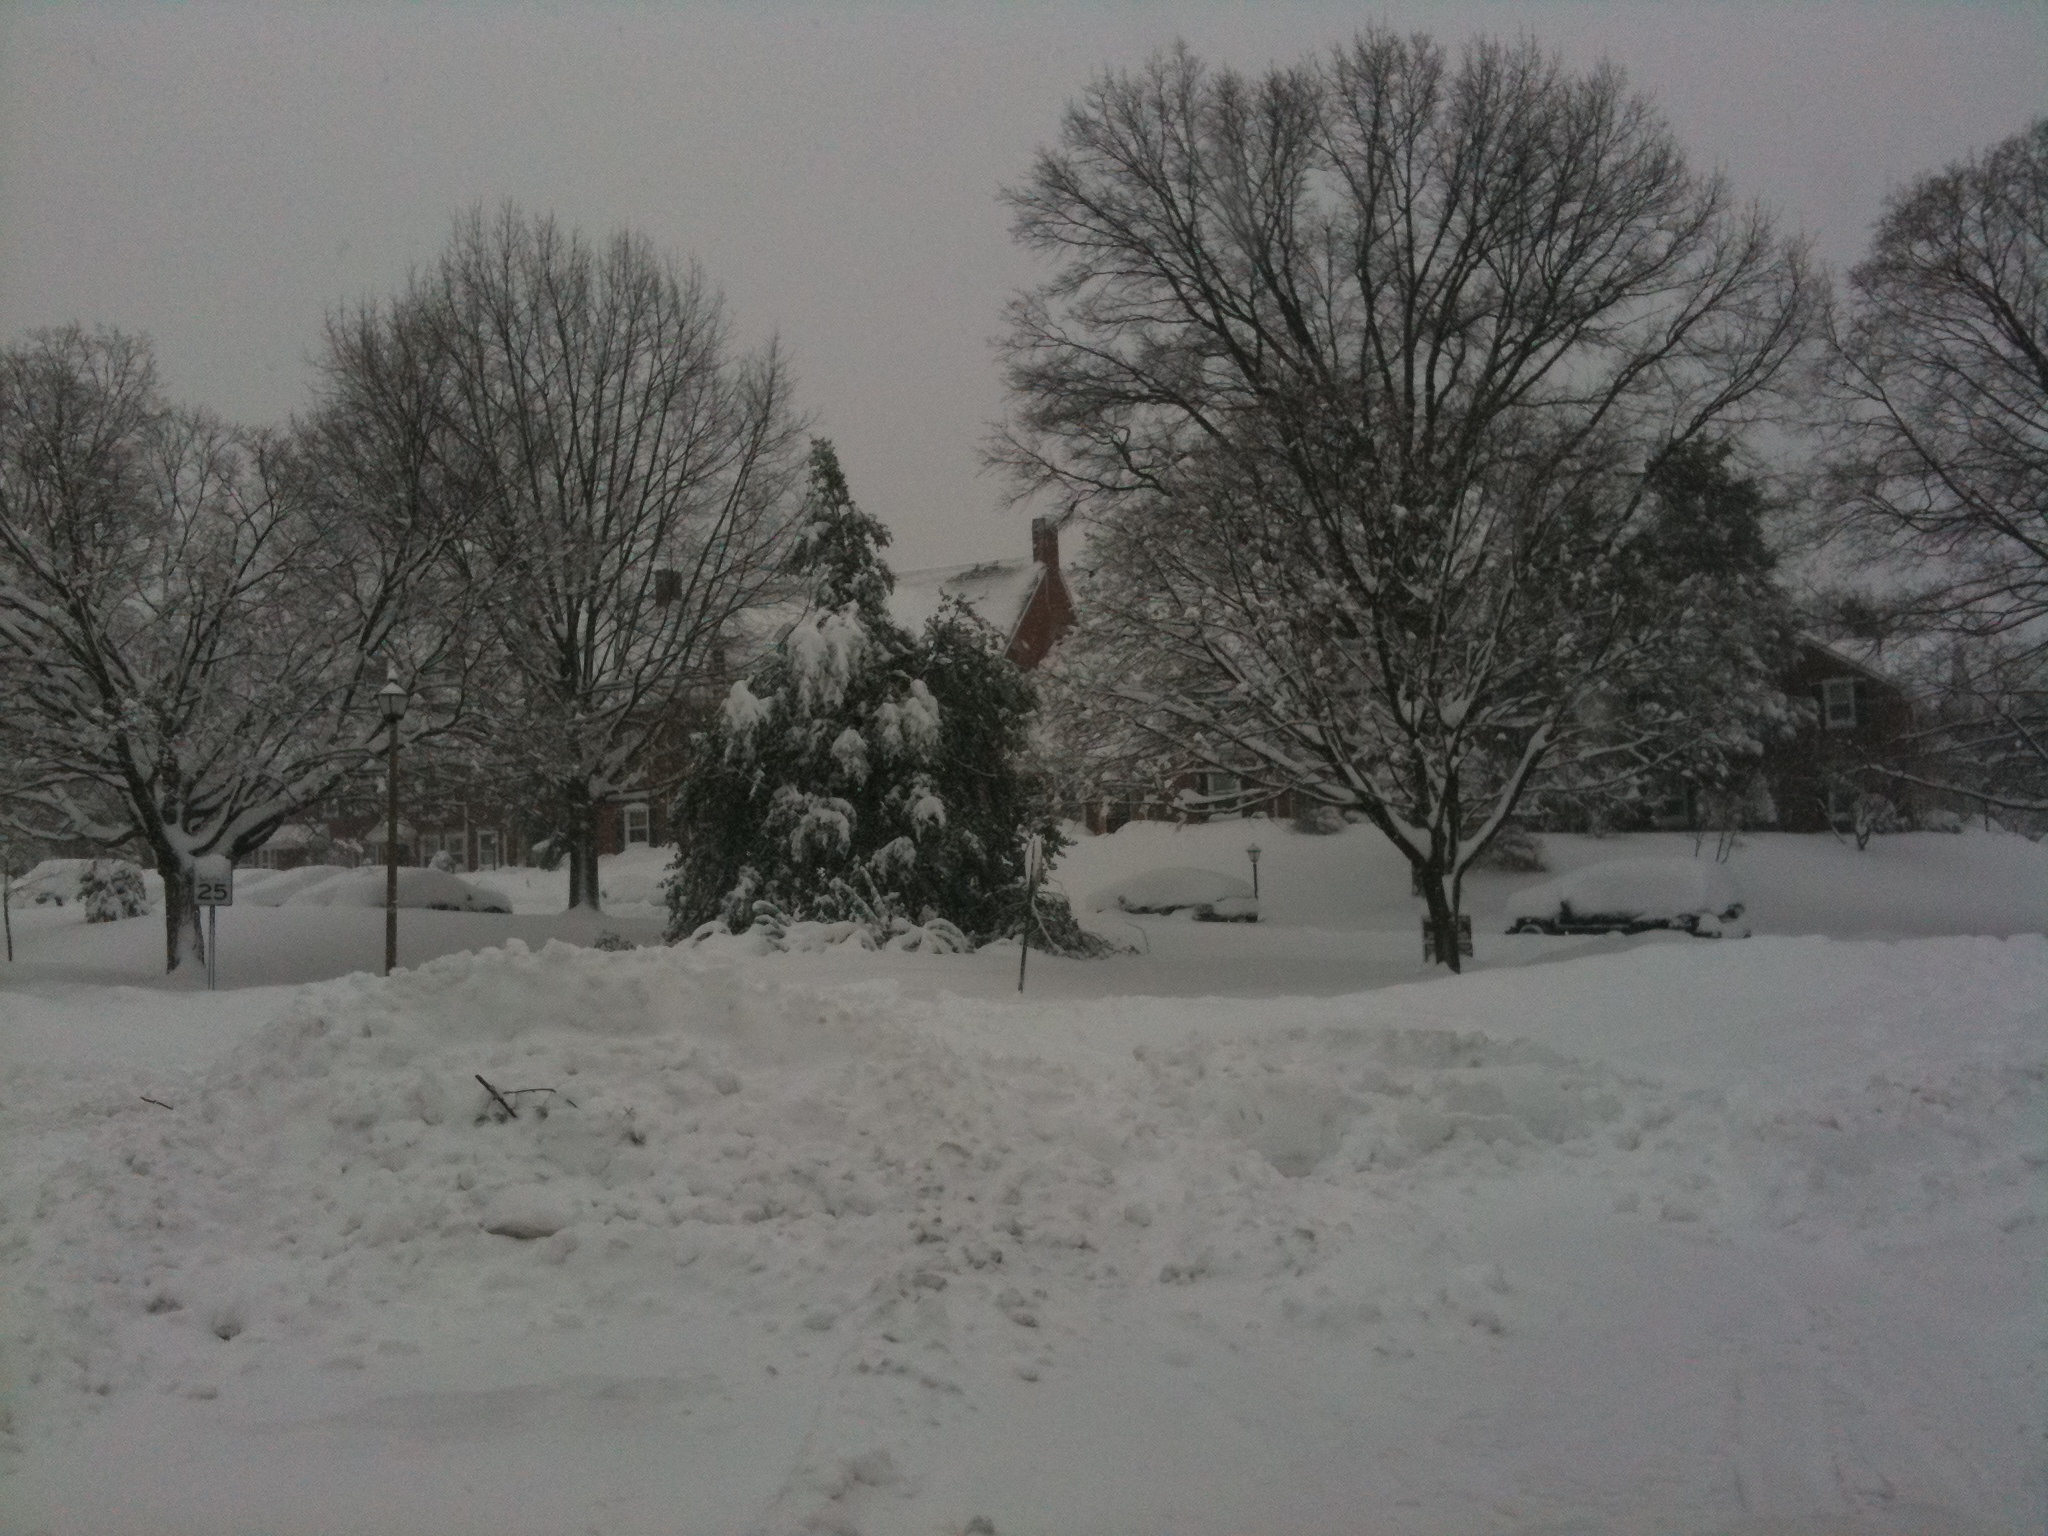 Click image for larger version  Name:Feb2010Snowstorm 159.JPG Views:63 Size:1.15 MB ID:21443